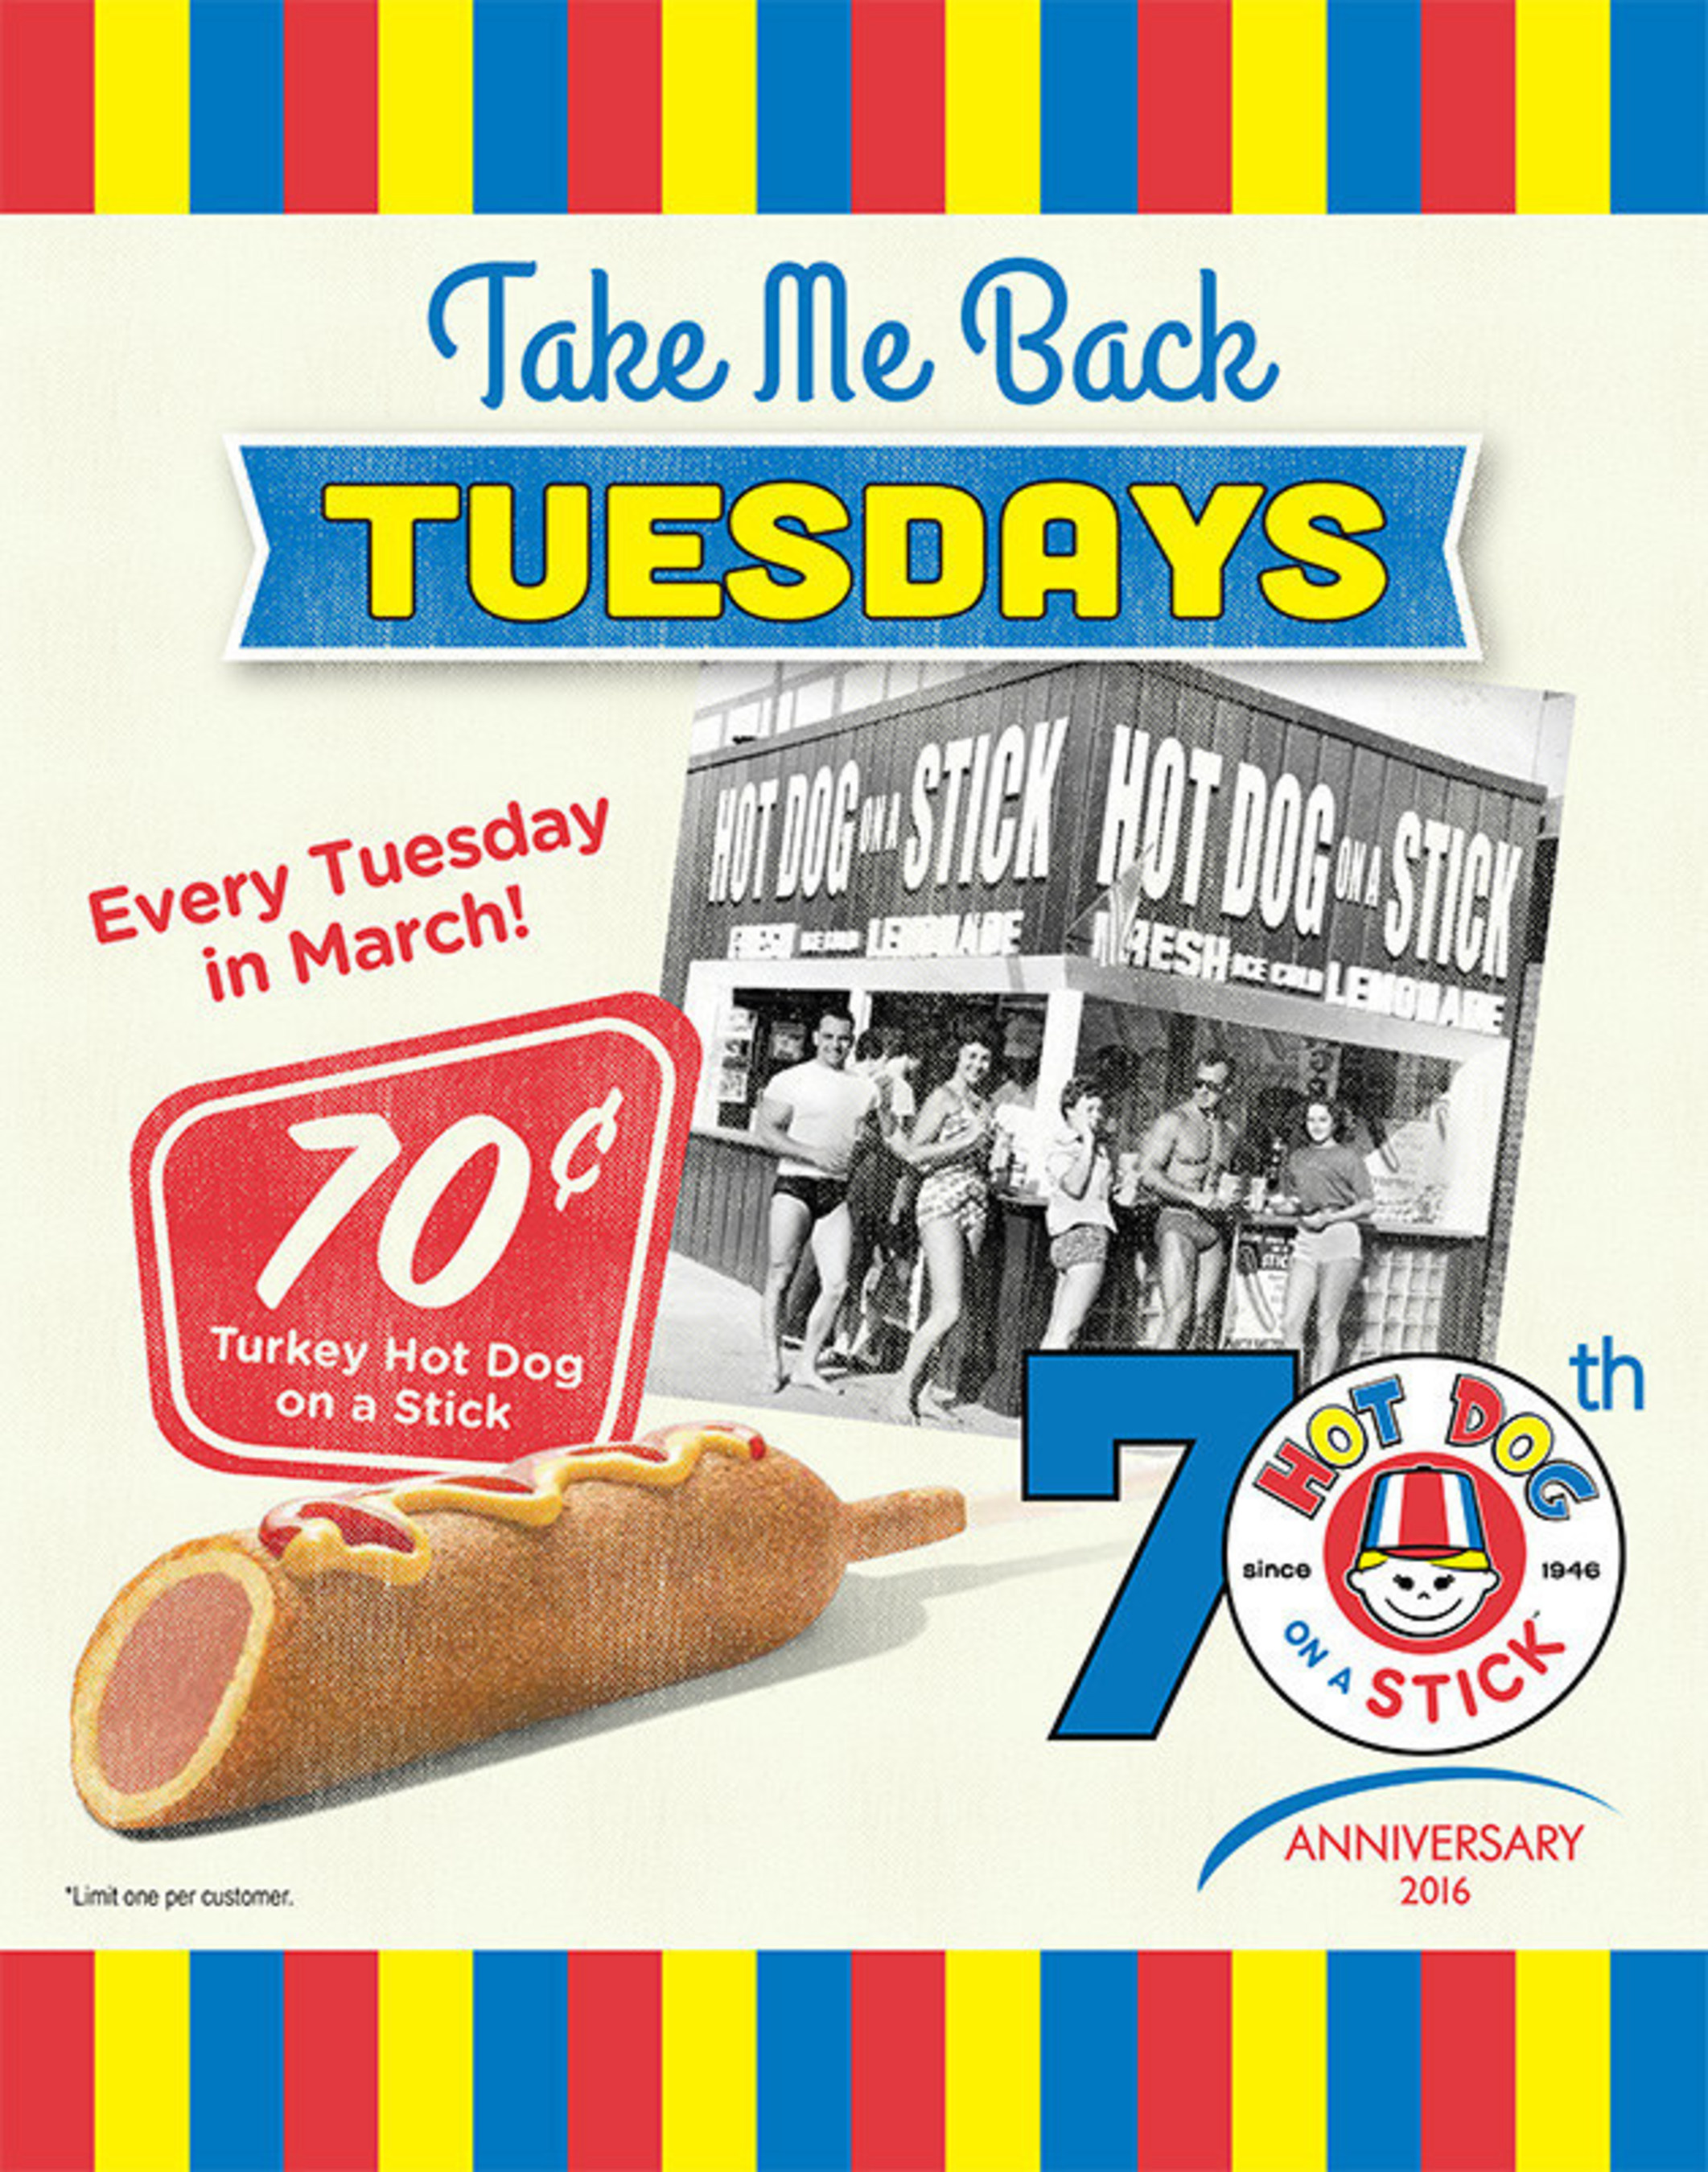 Hot Dog on a Stick Offering $.70 Original Turkey Hot Dog on a Stick Every Tuesday in March